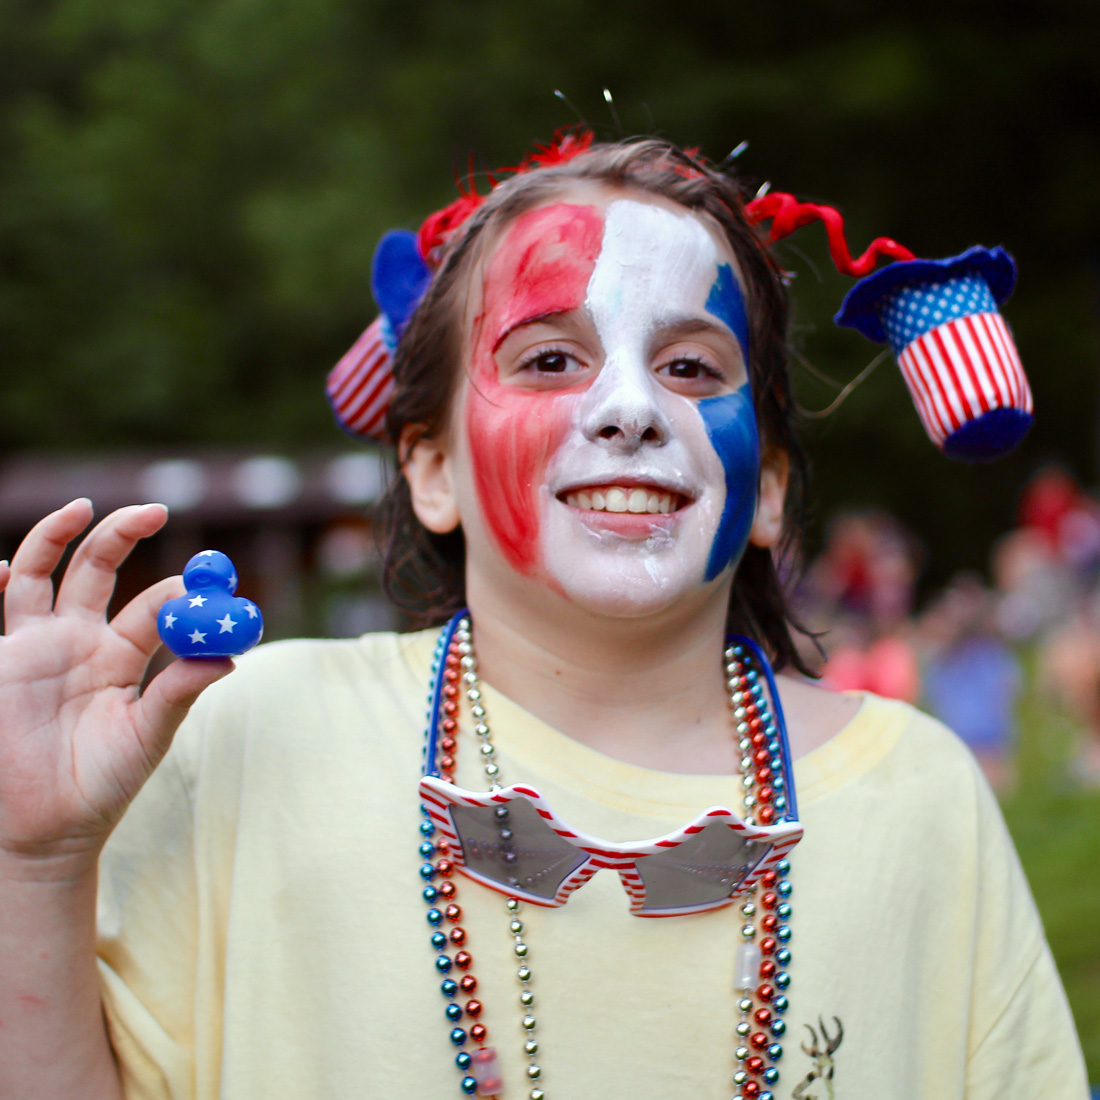 4th July face painted child